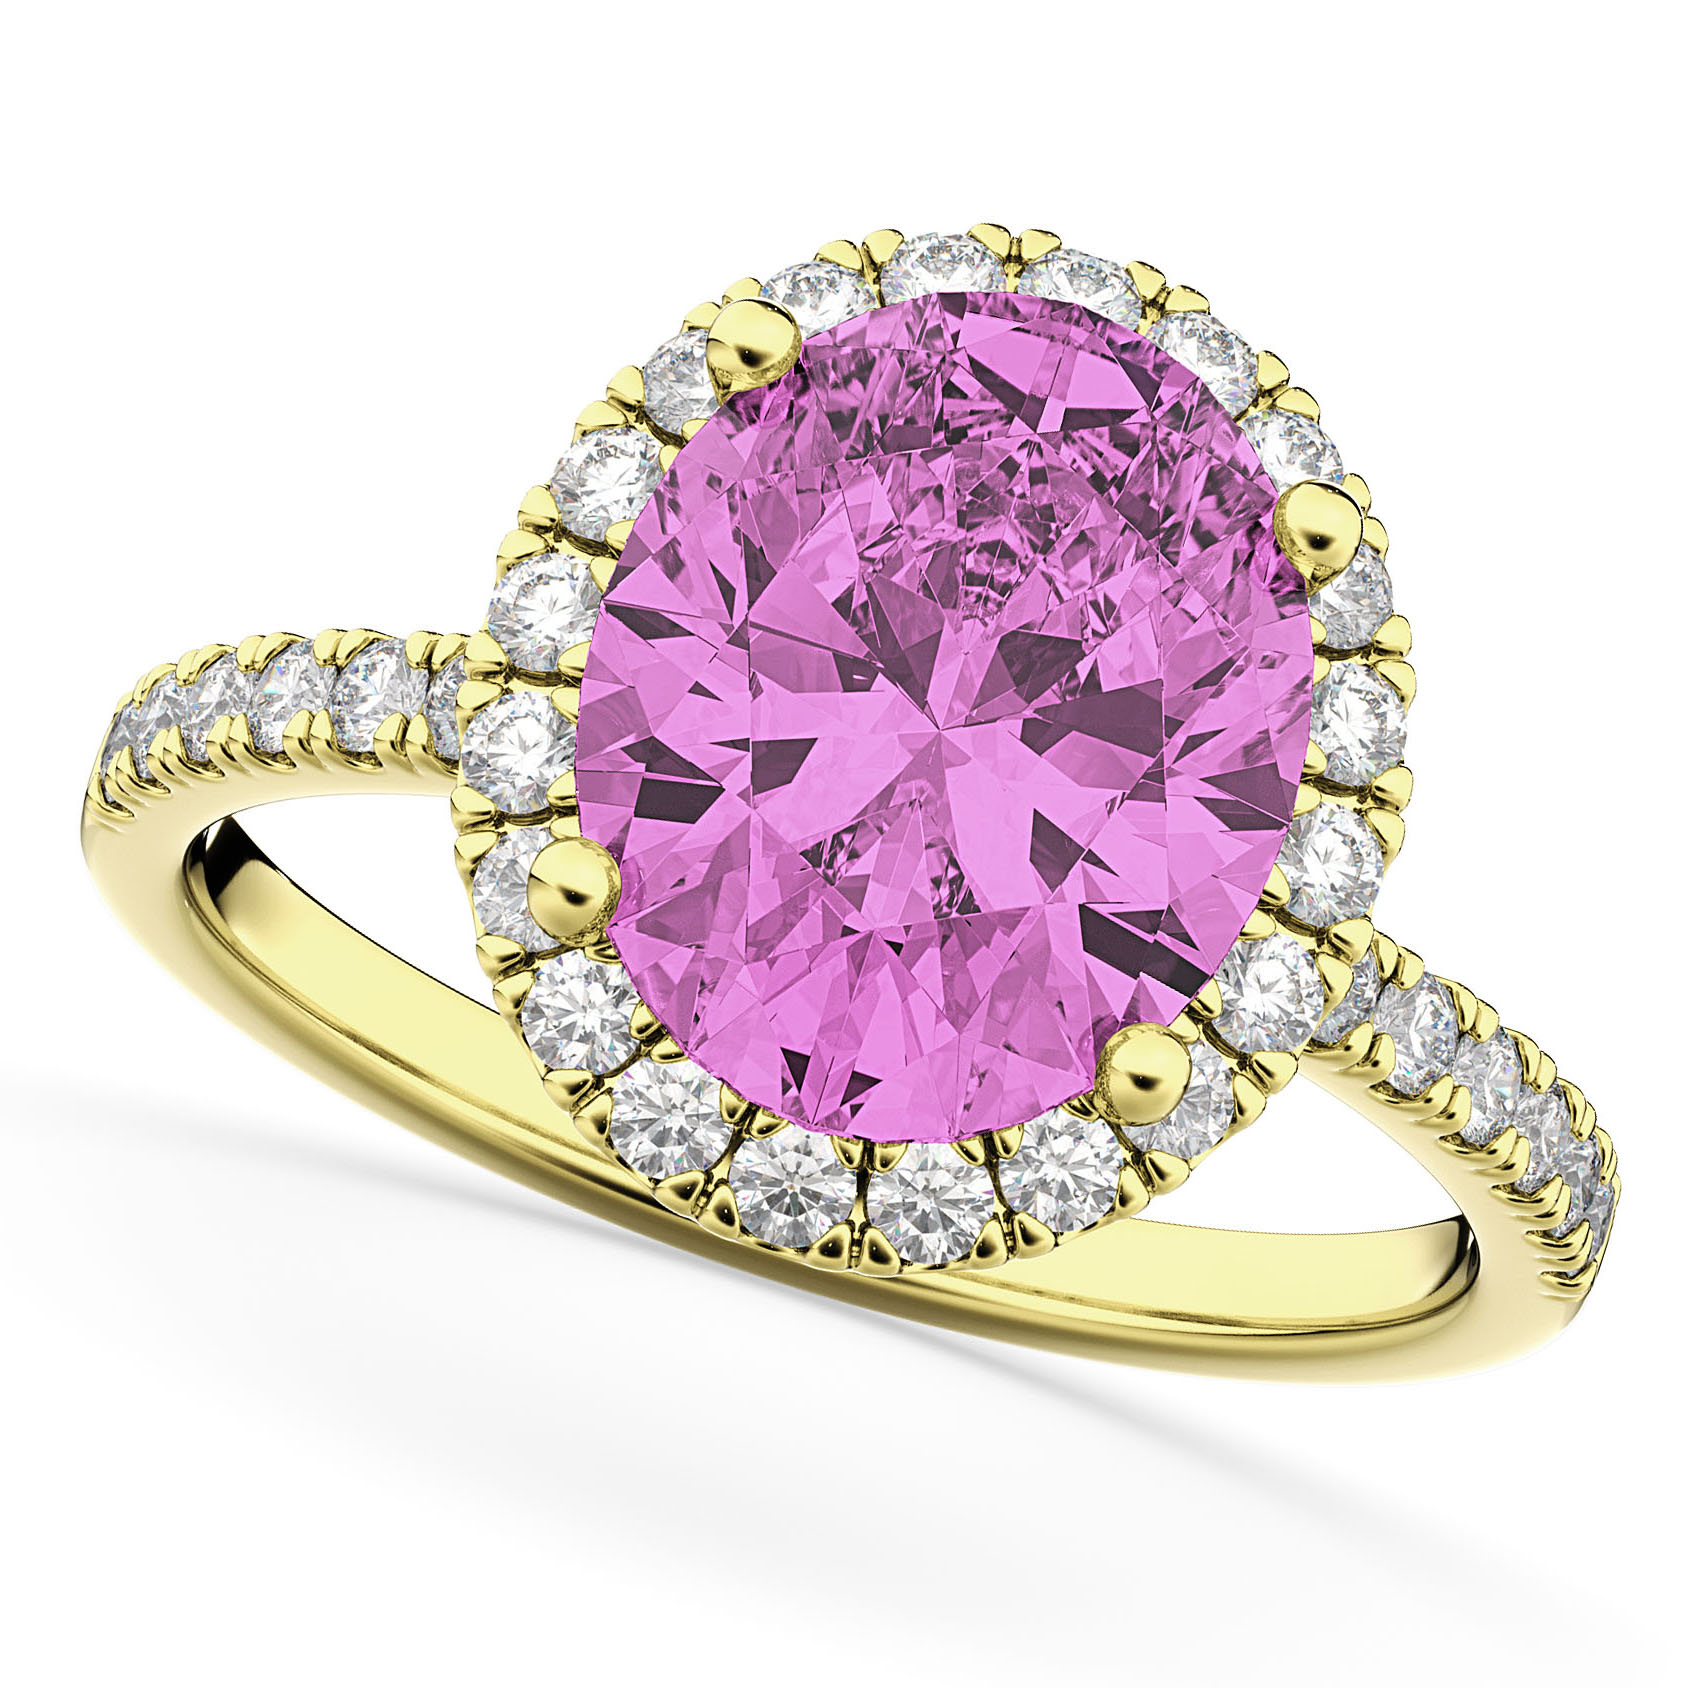 Oval Cut Halo Pink Sapphire & Diamond Engagement Ring 14K Yellow ...